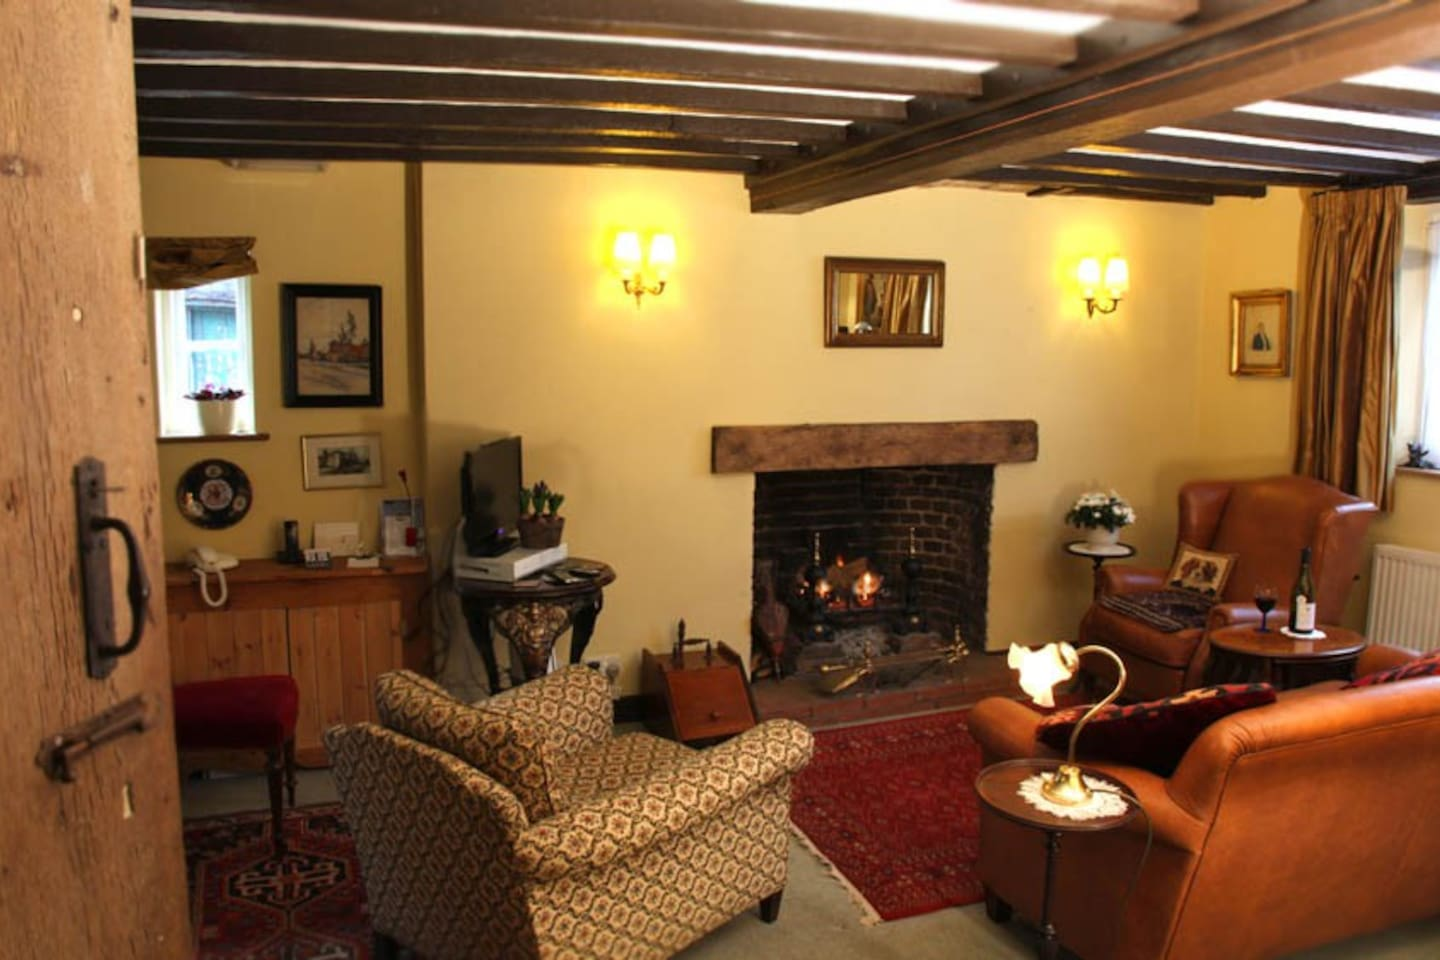 Sitting room at the Pilstyes, 106 High Street, Lindfield with open fire